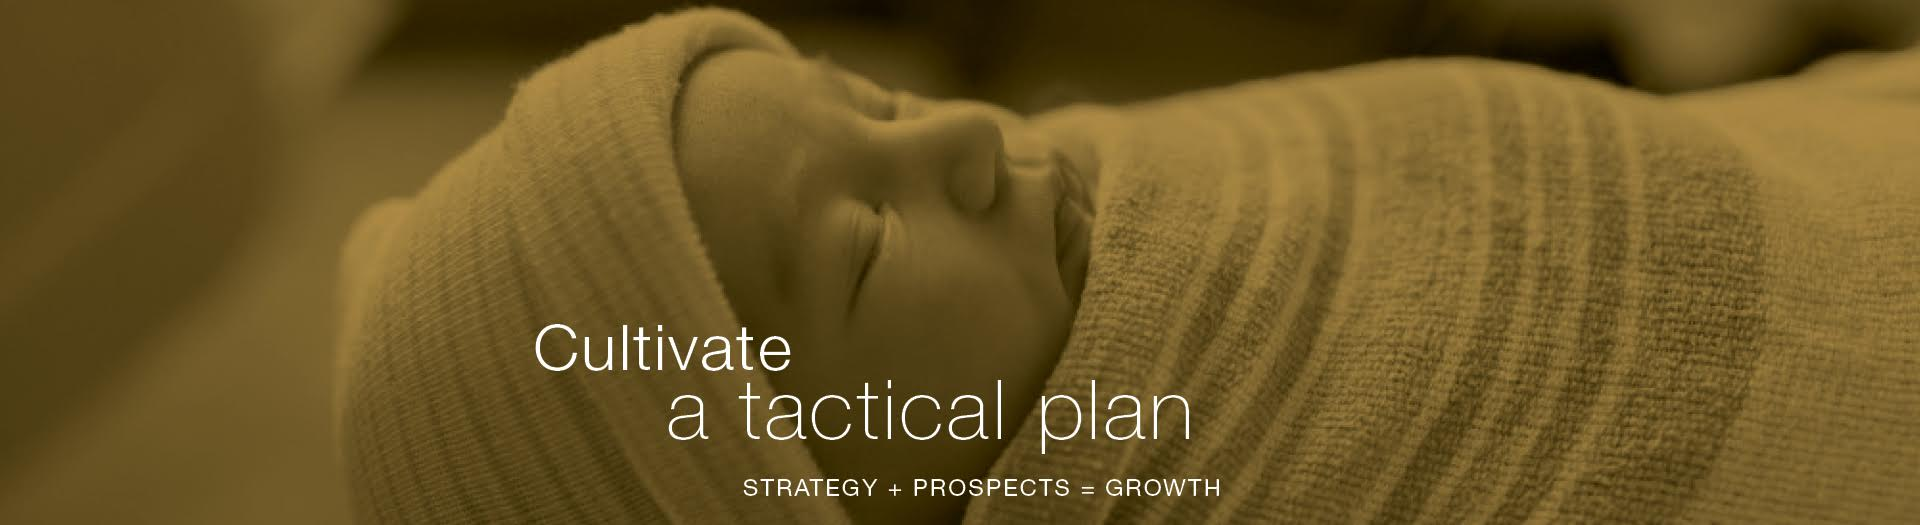 cultivate-a-tactical-plan